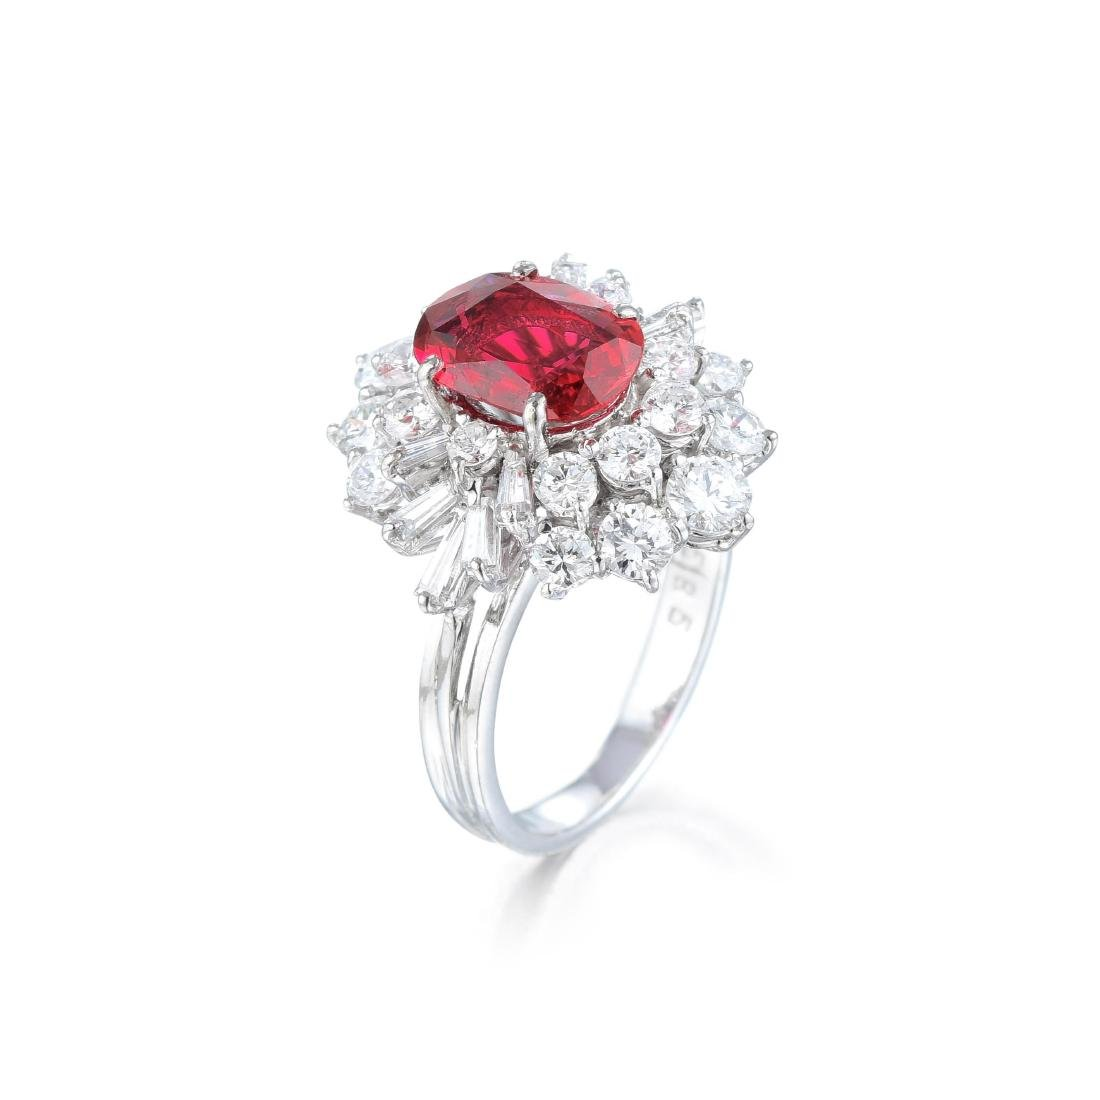 An Unheated Ruby and Diamond Ring - 2